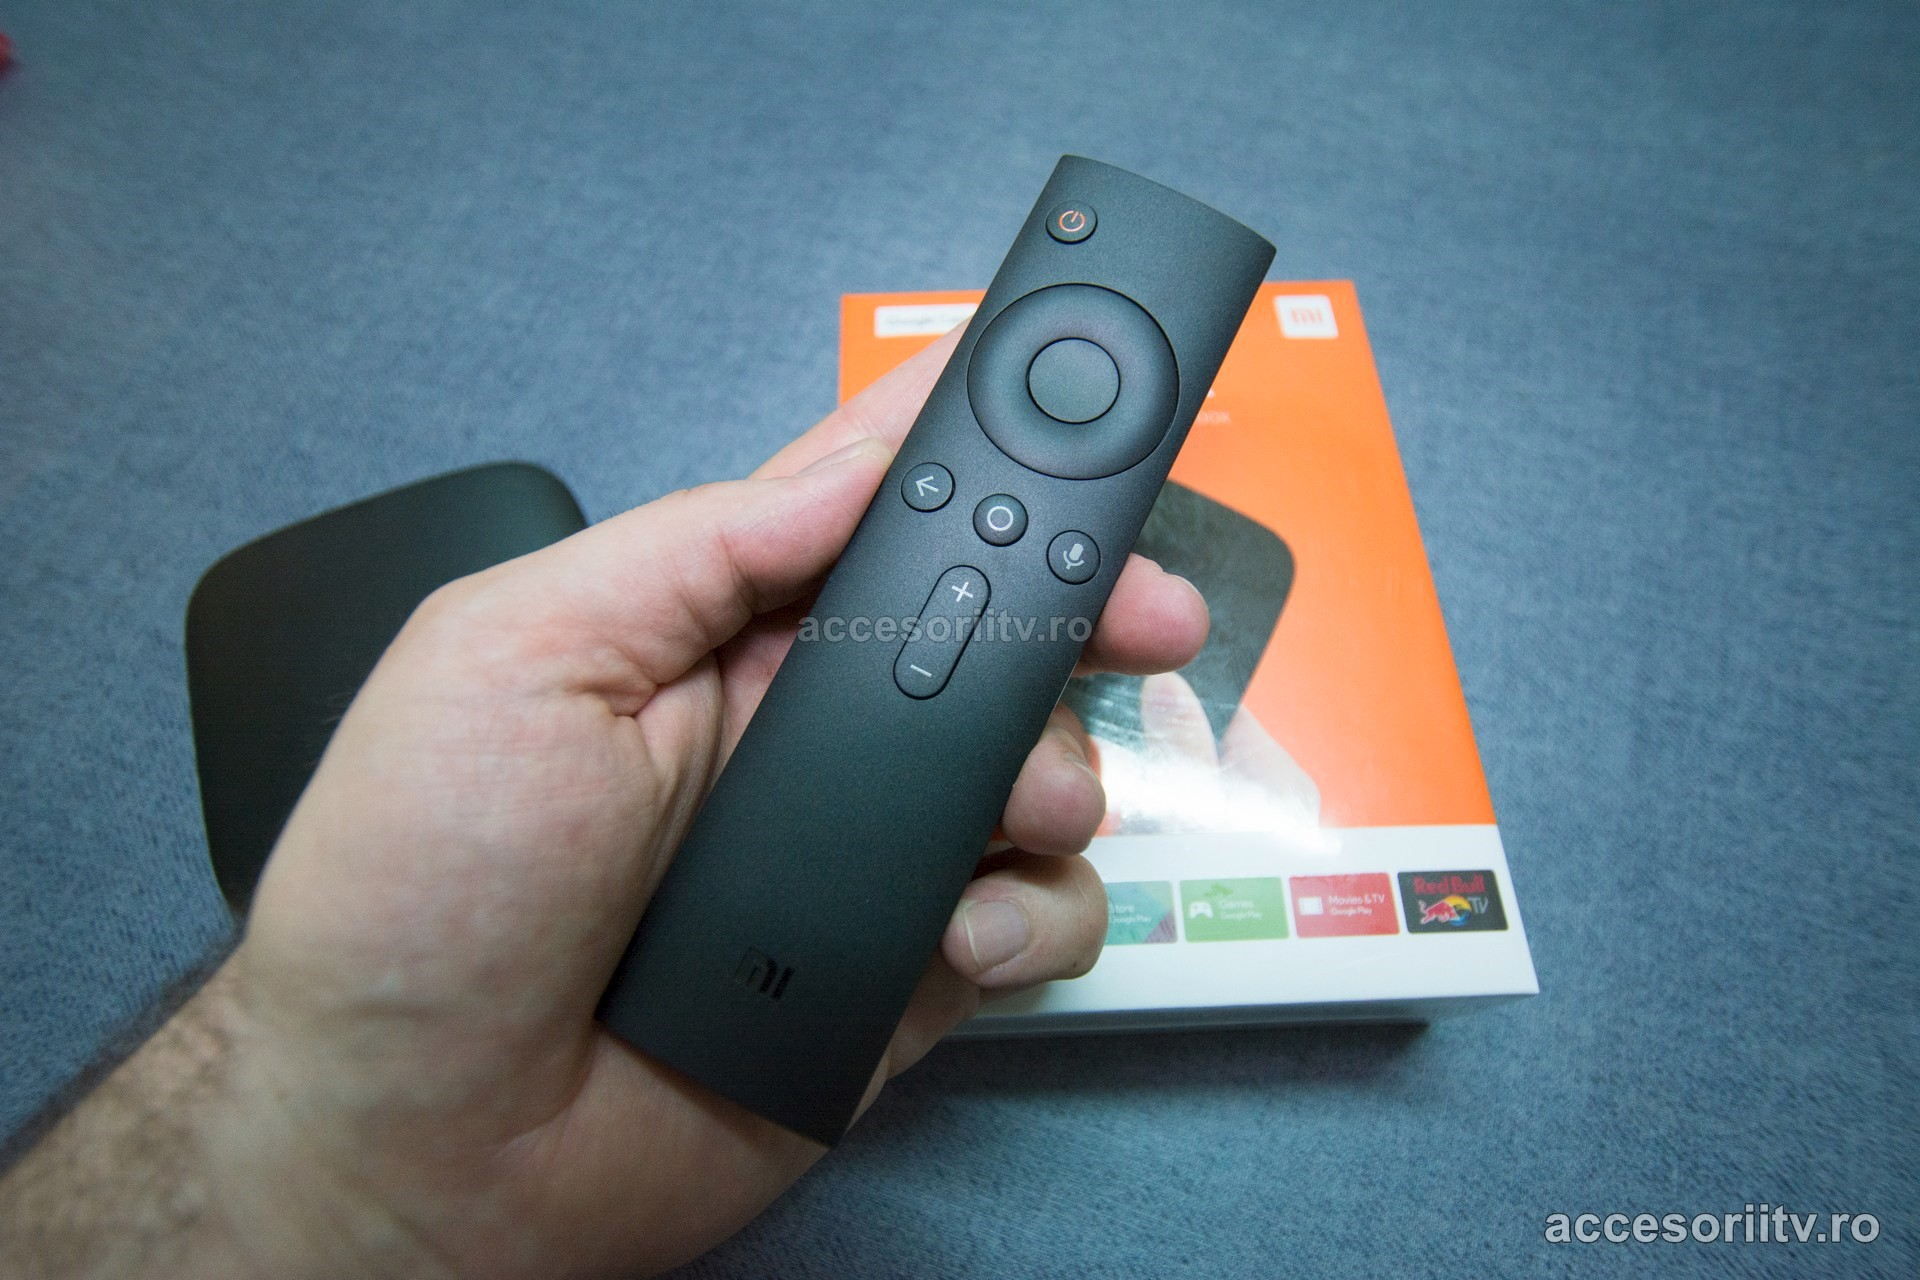 xiaomi mi box tv 3 android tv remote control in hand